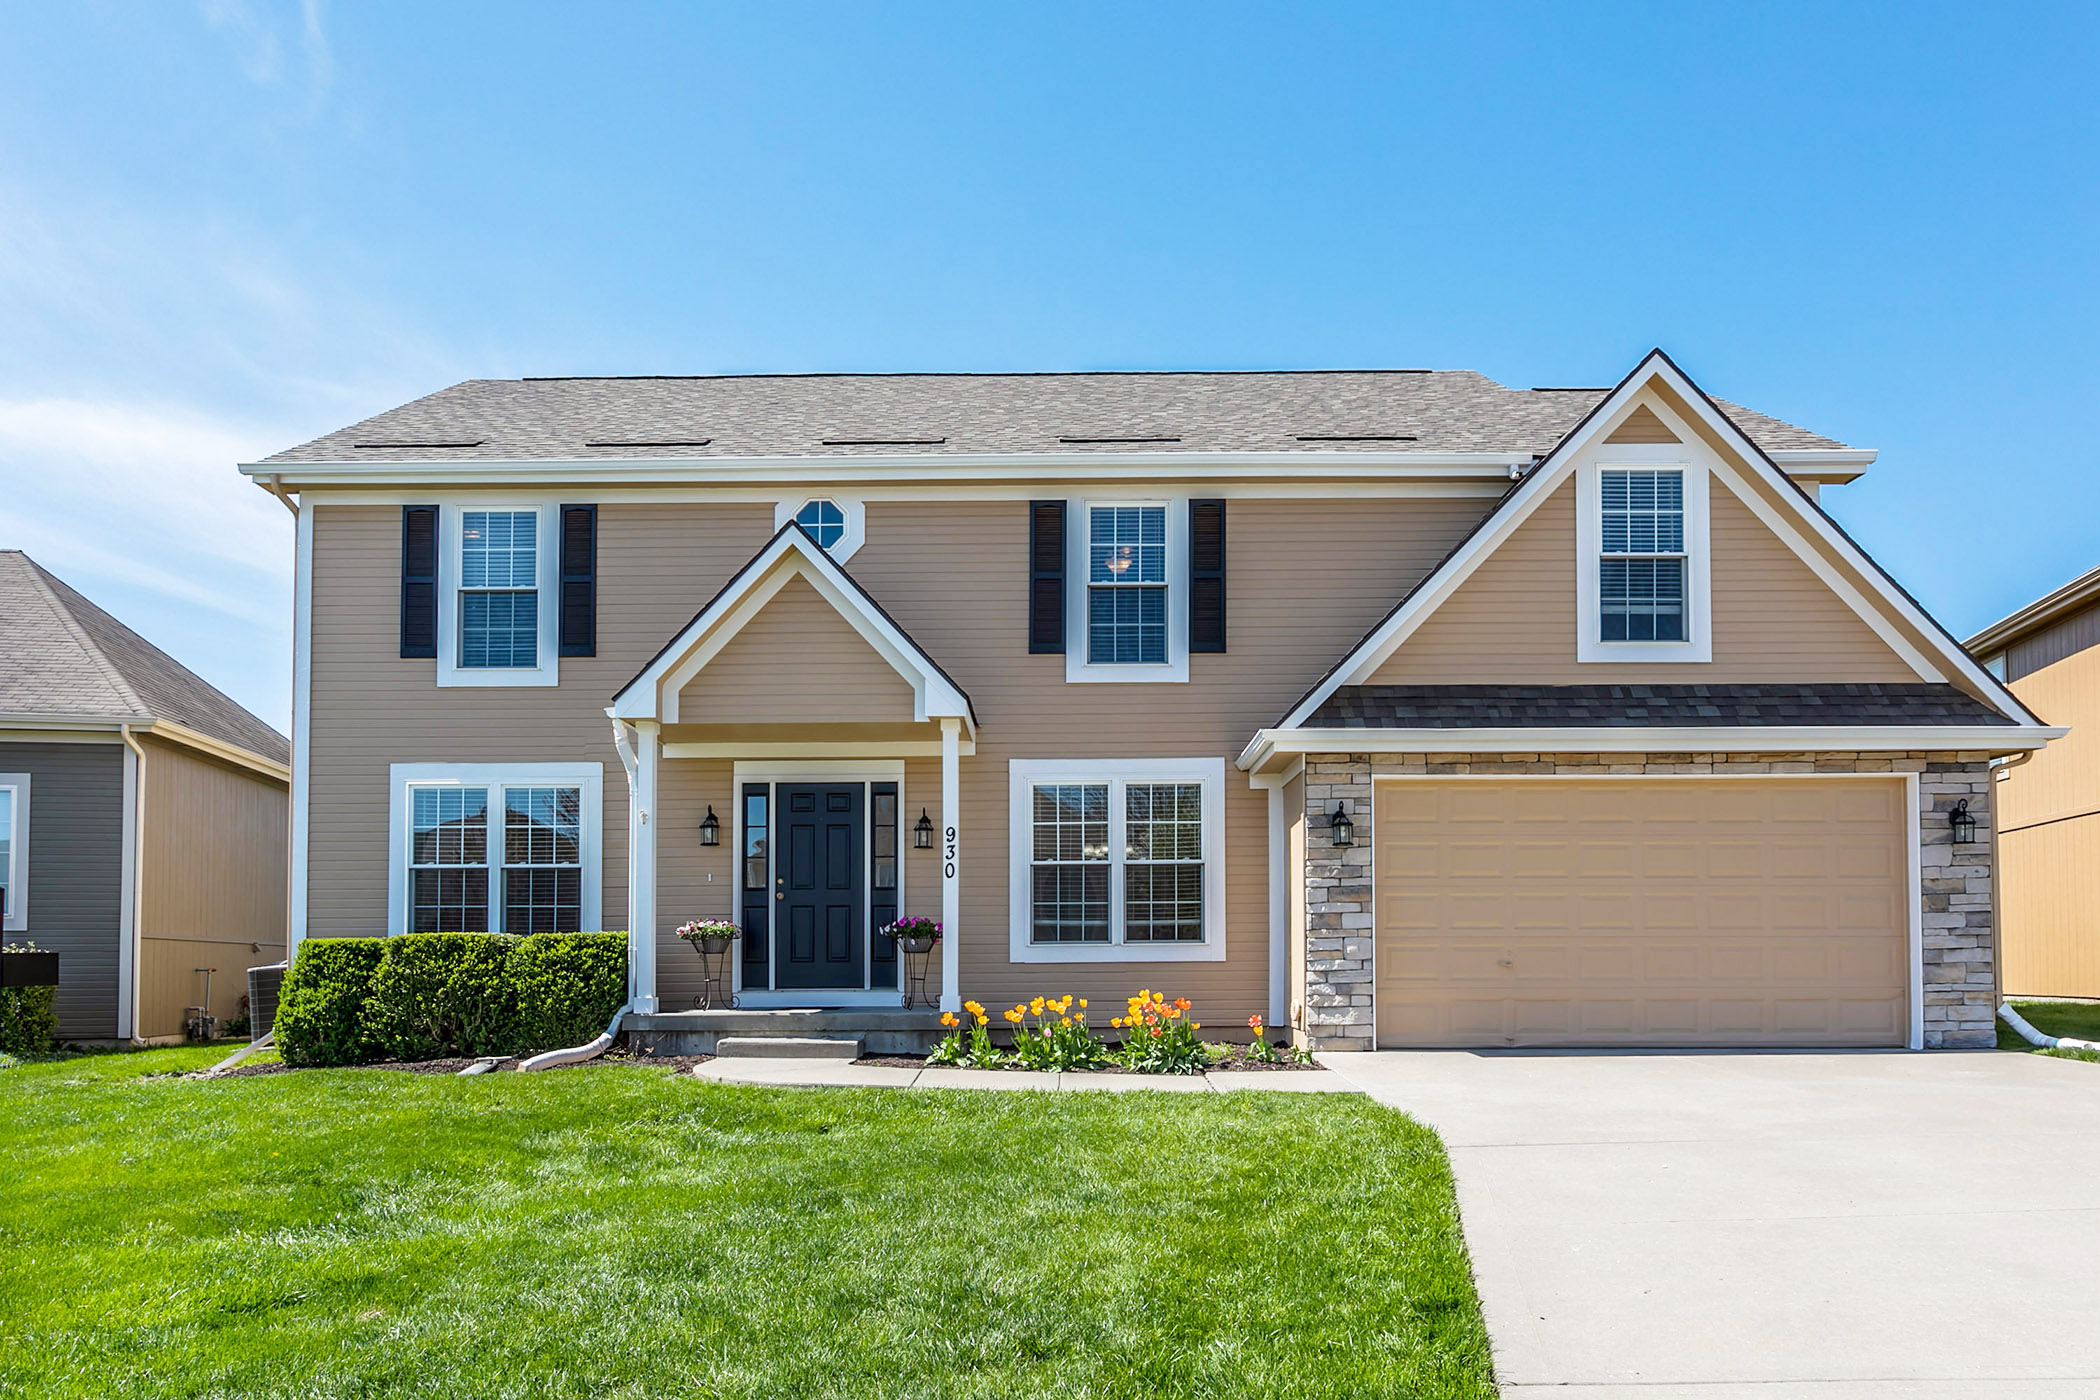 JUST LISTED! Beautiful Wyndham Hill Home with So Much NEW!